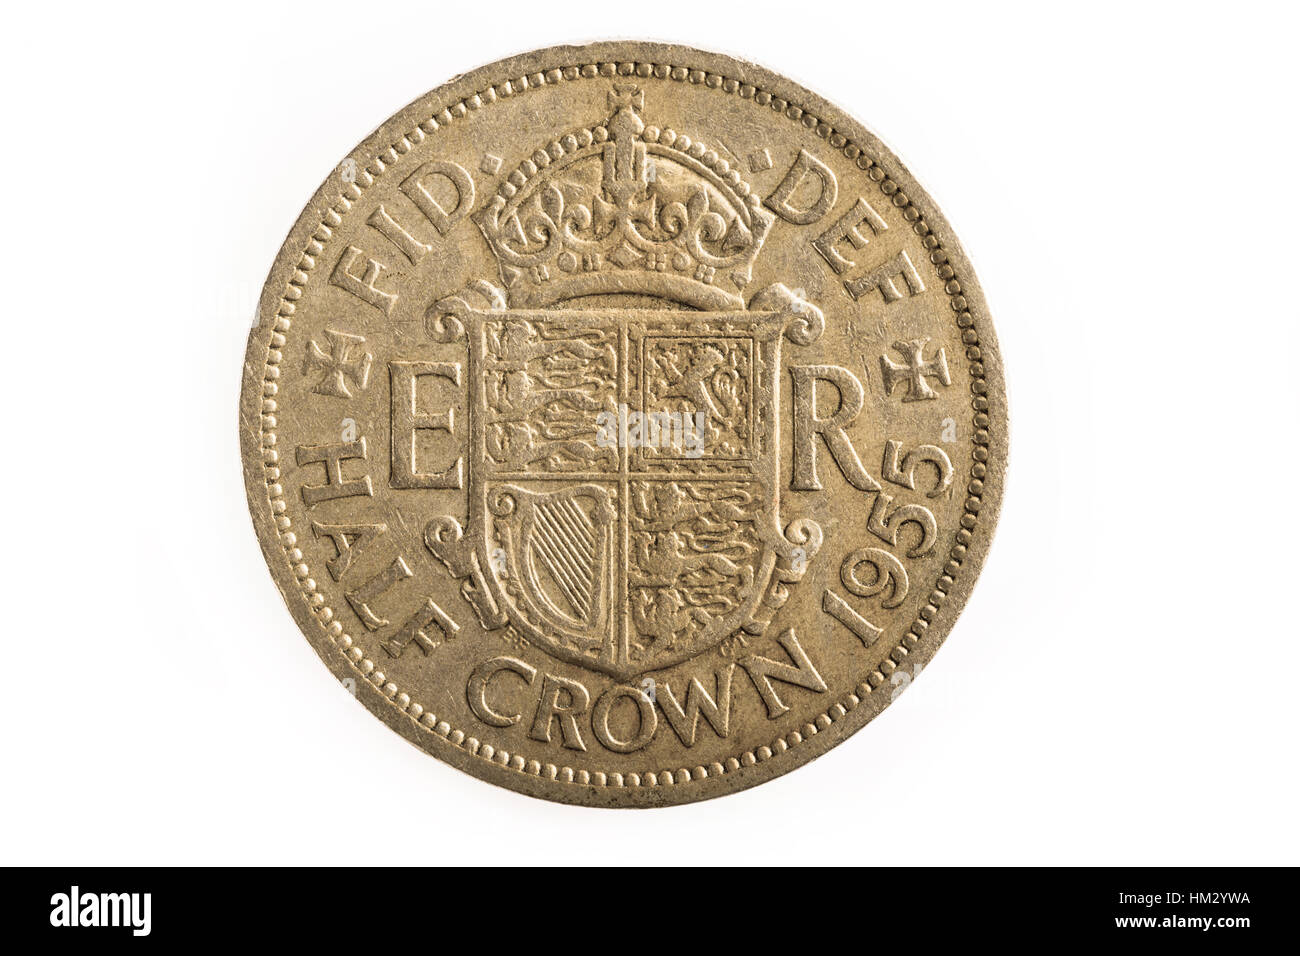 Half Crown old British imperial coin - Stock Image